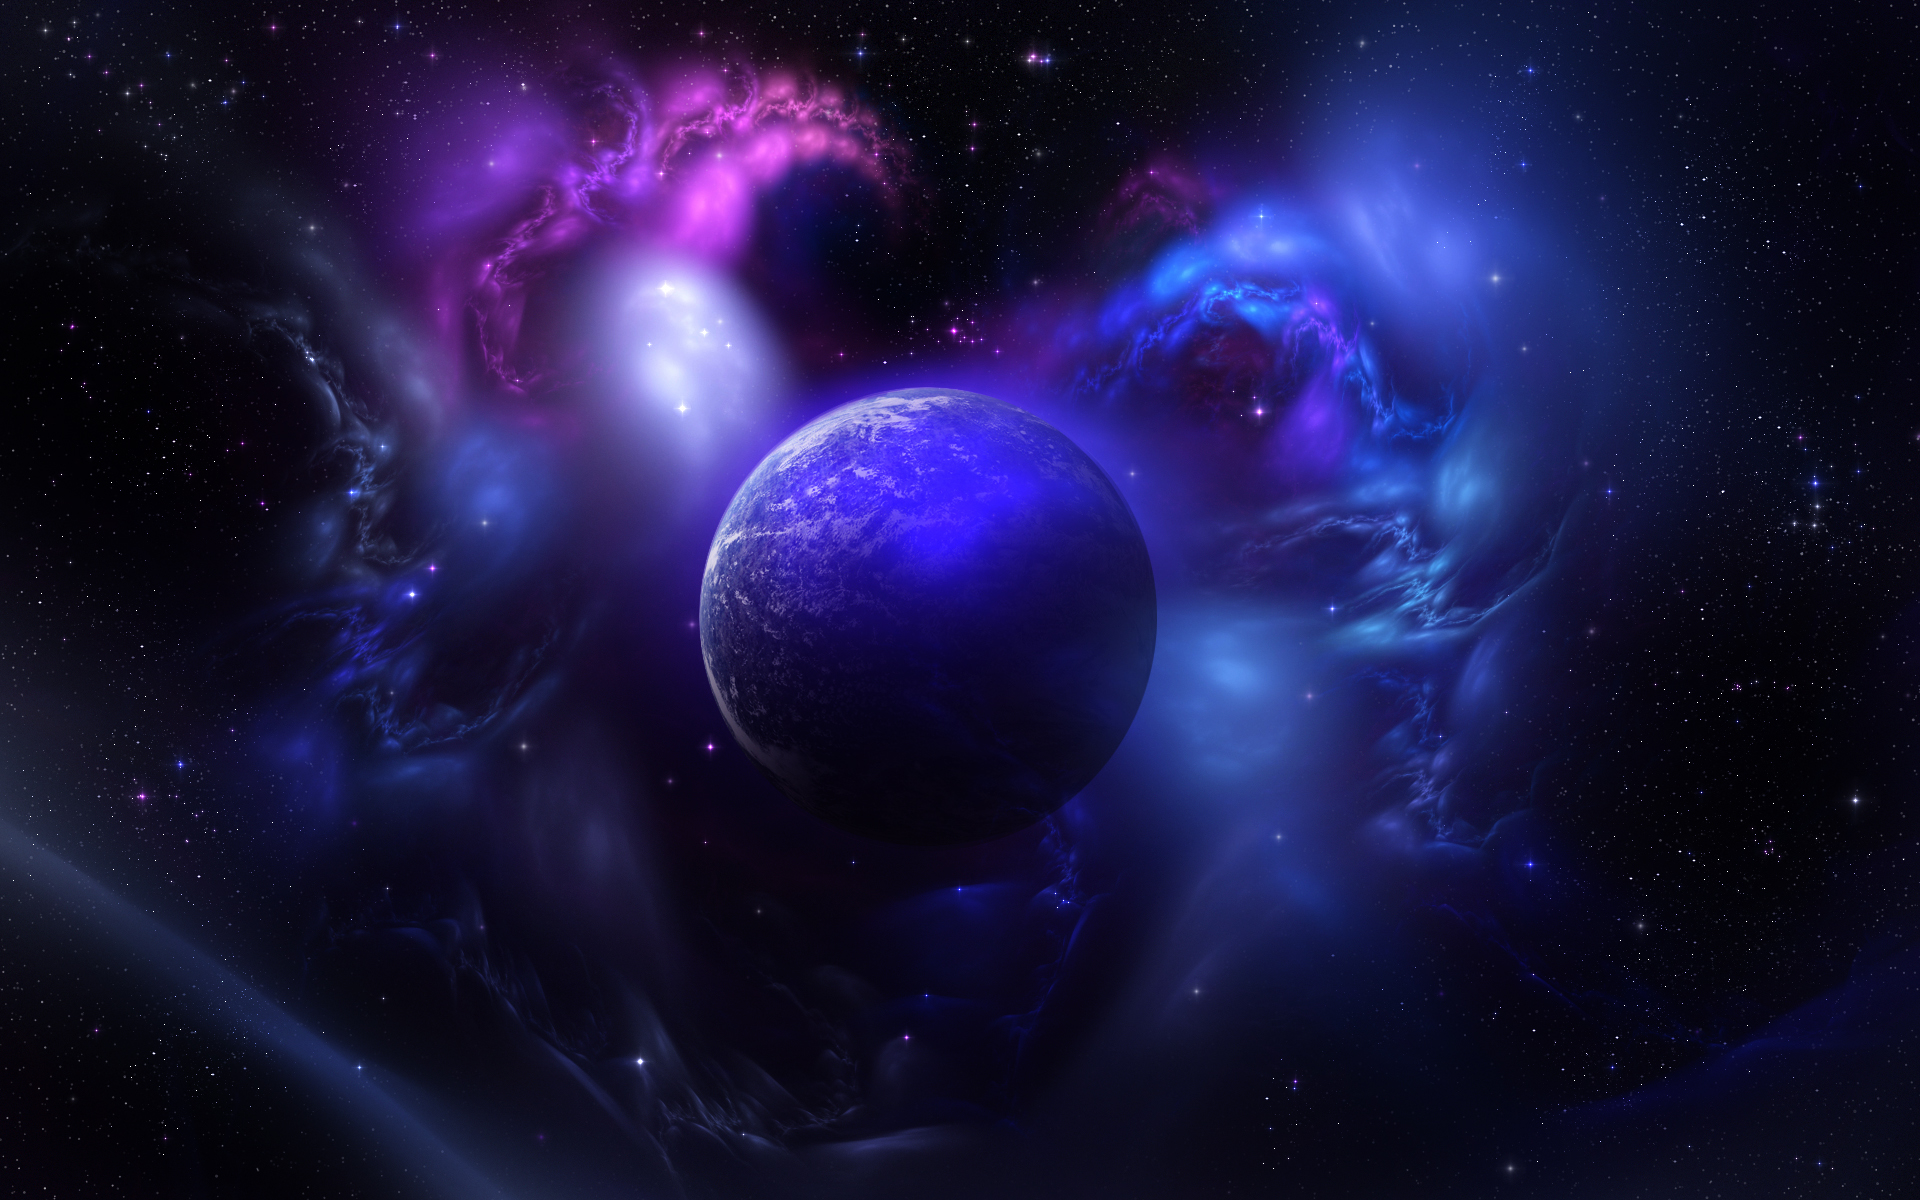 Sci fi planets wallpaper 448735 for Sci fi background